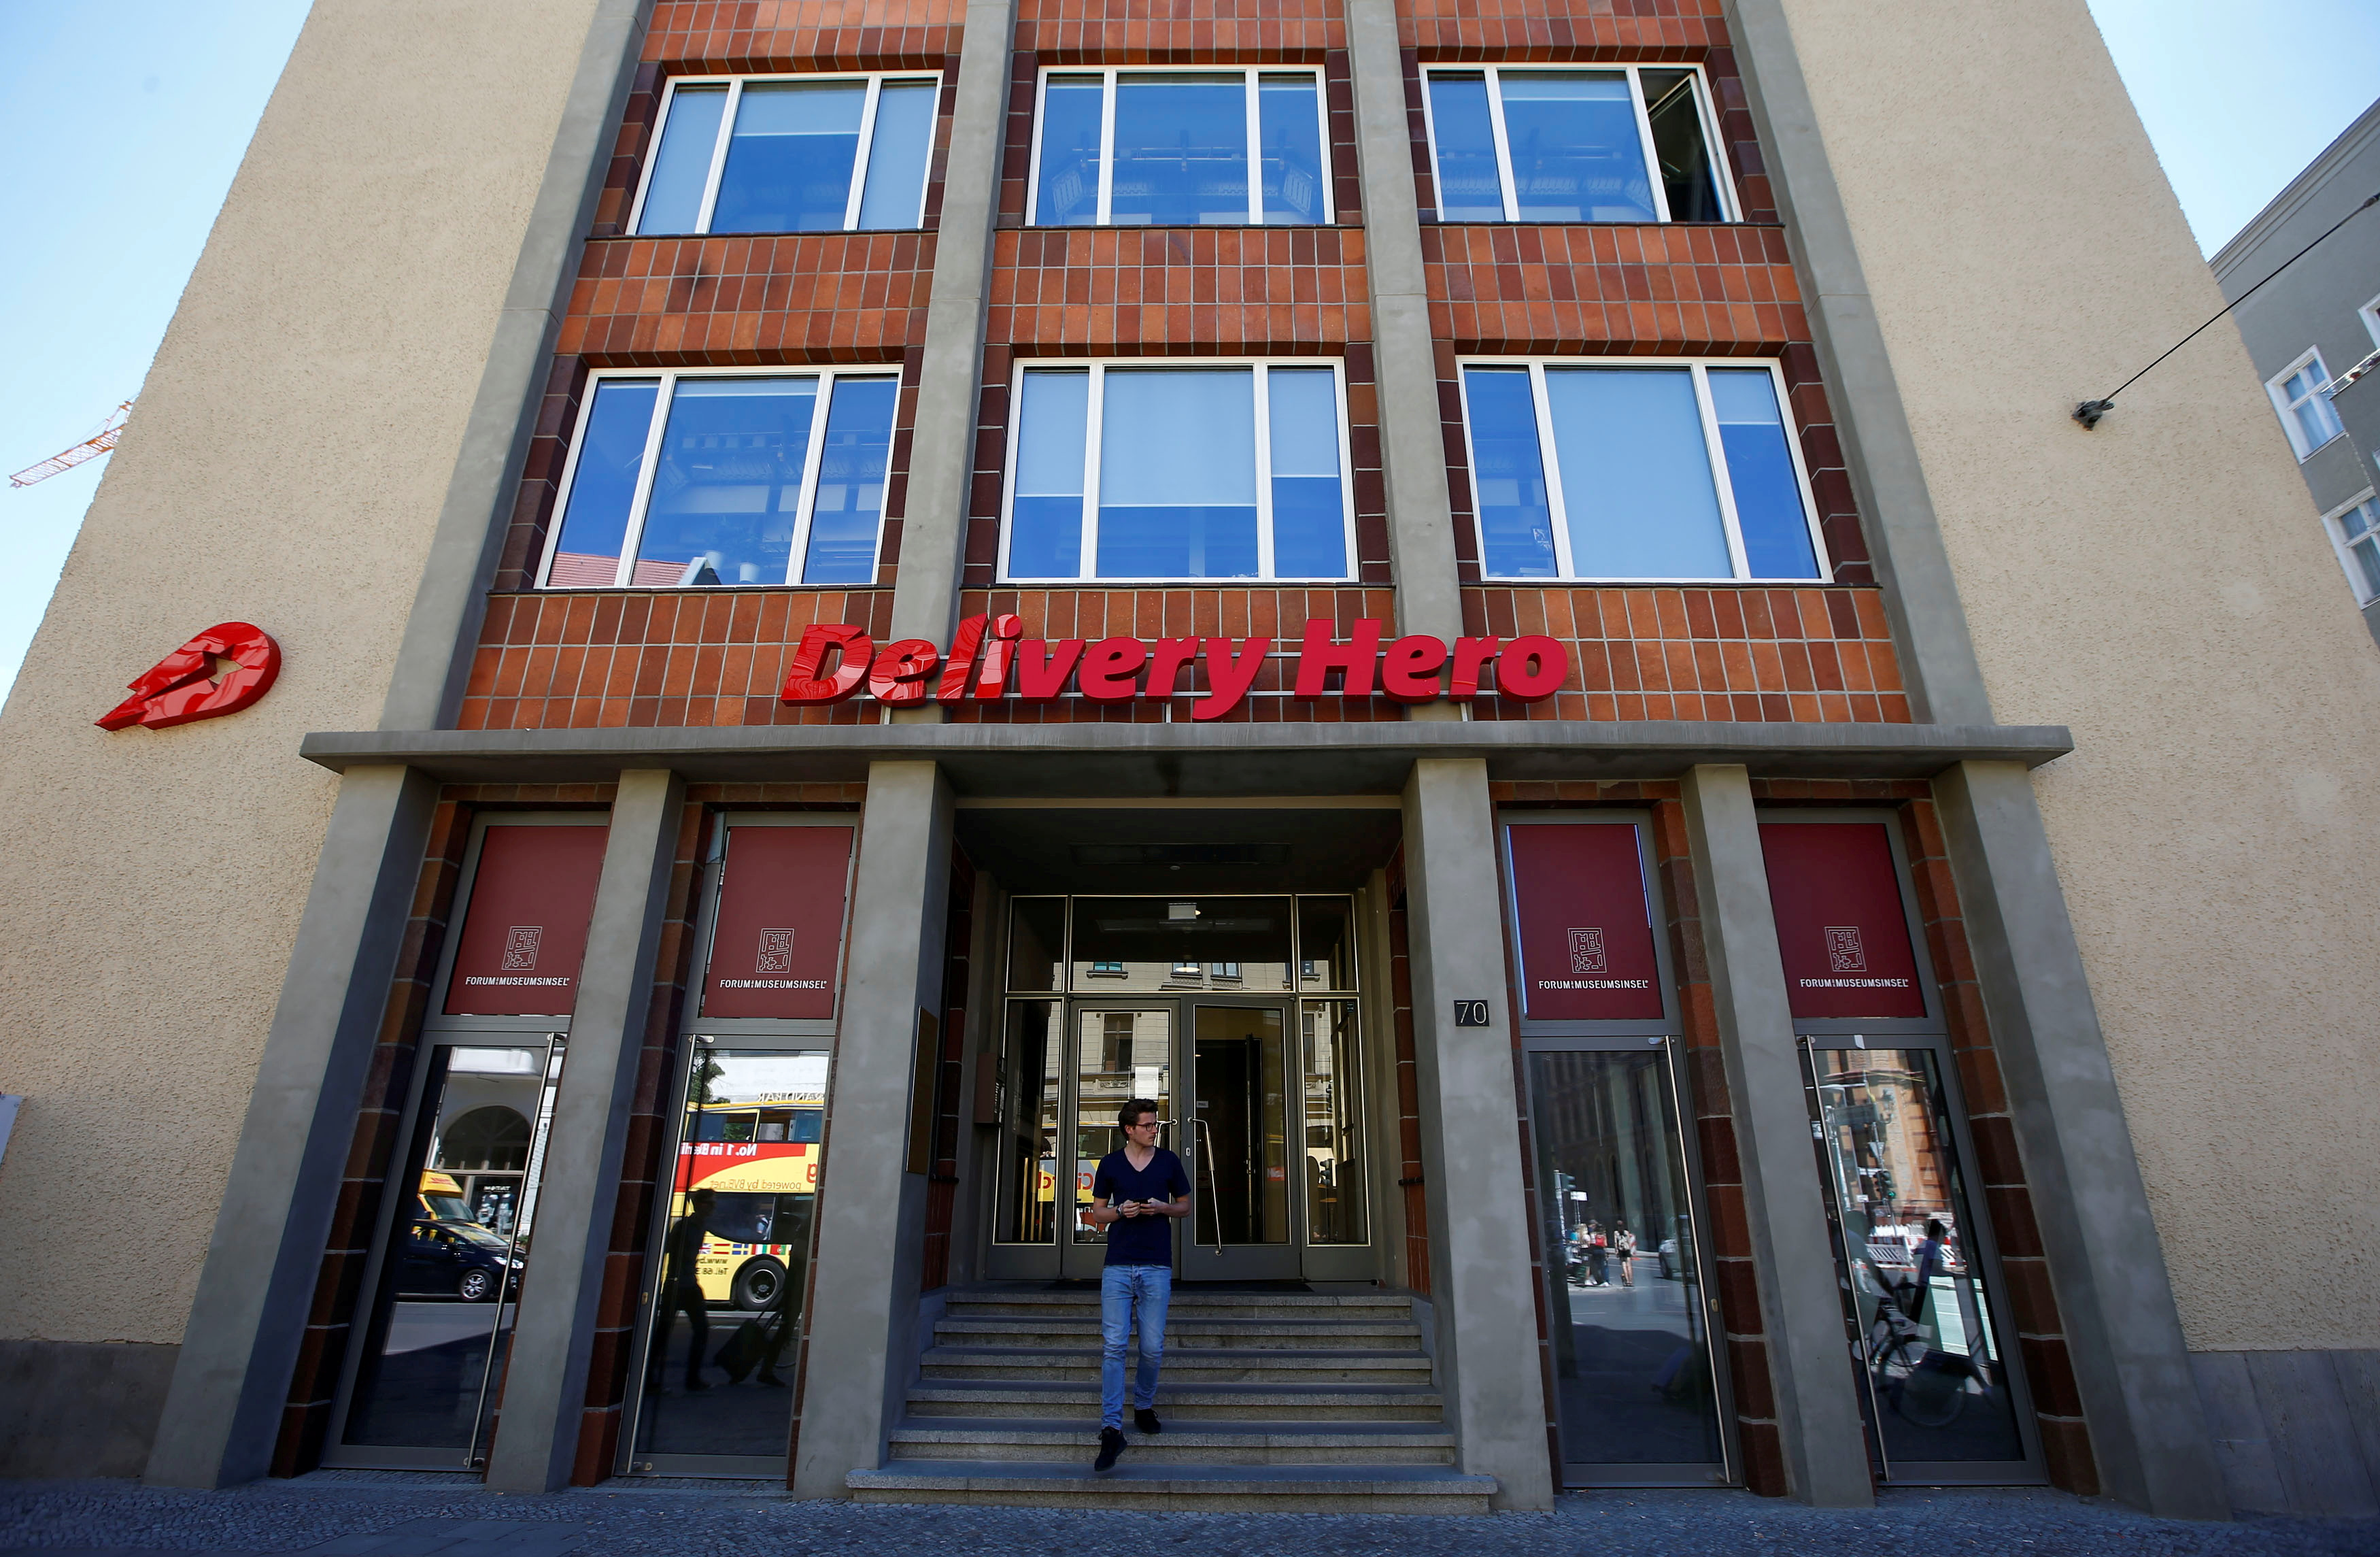 The Delivery Hero headquarters is pictured in Berlin, Germany, June 2, 2017. The Berlin-based company Delivery Hero, one of Europe's largest internet start-ups. REUTERS/Fabrizio Bensch/File Photo